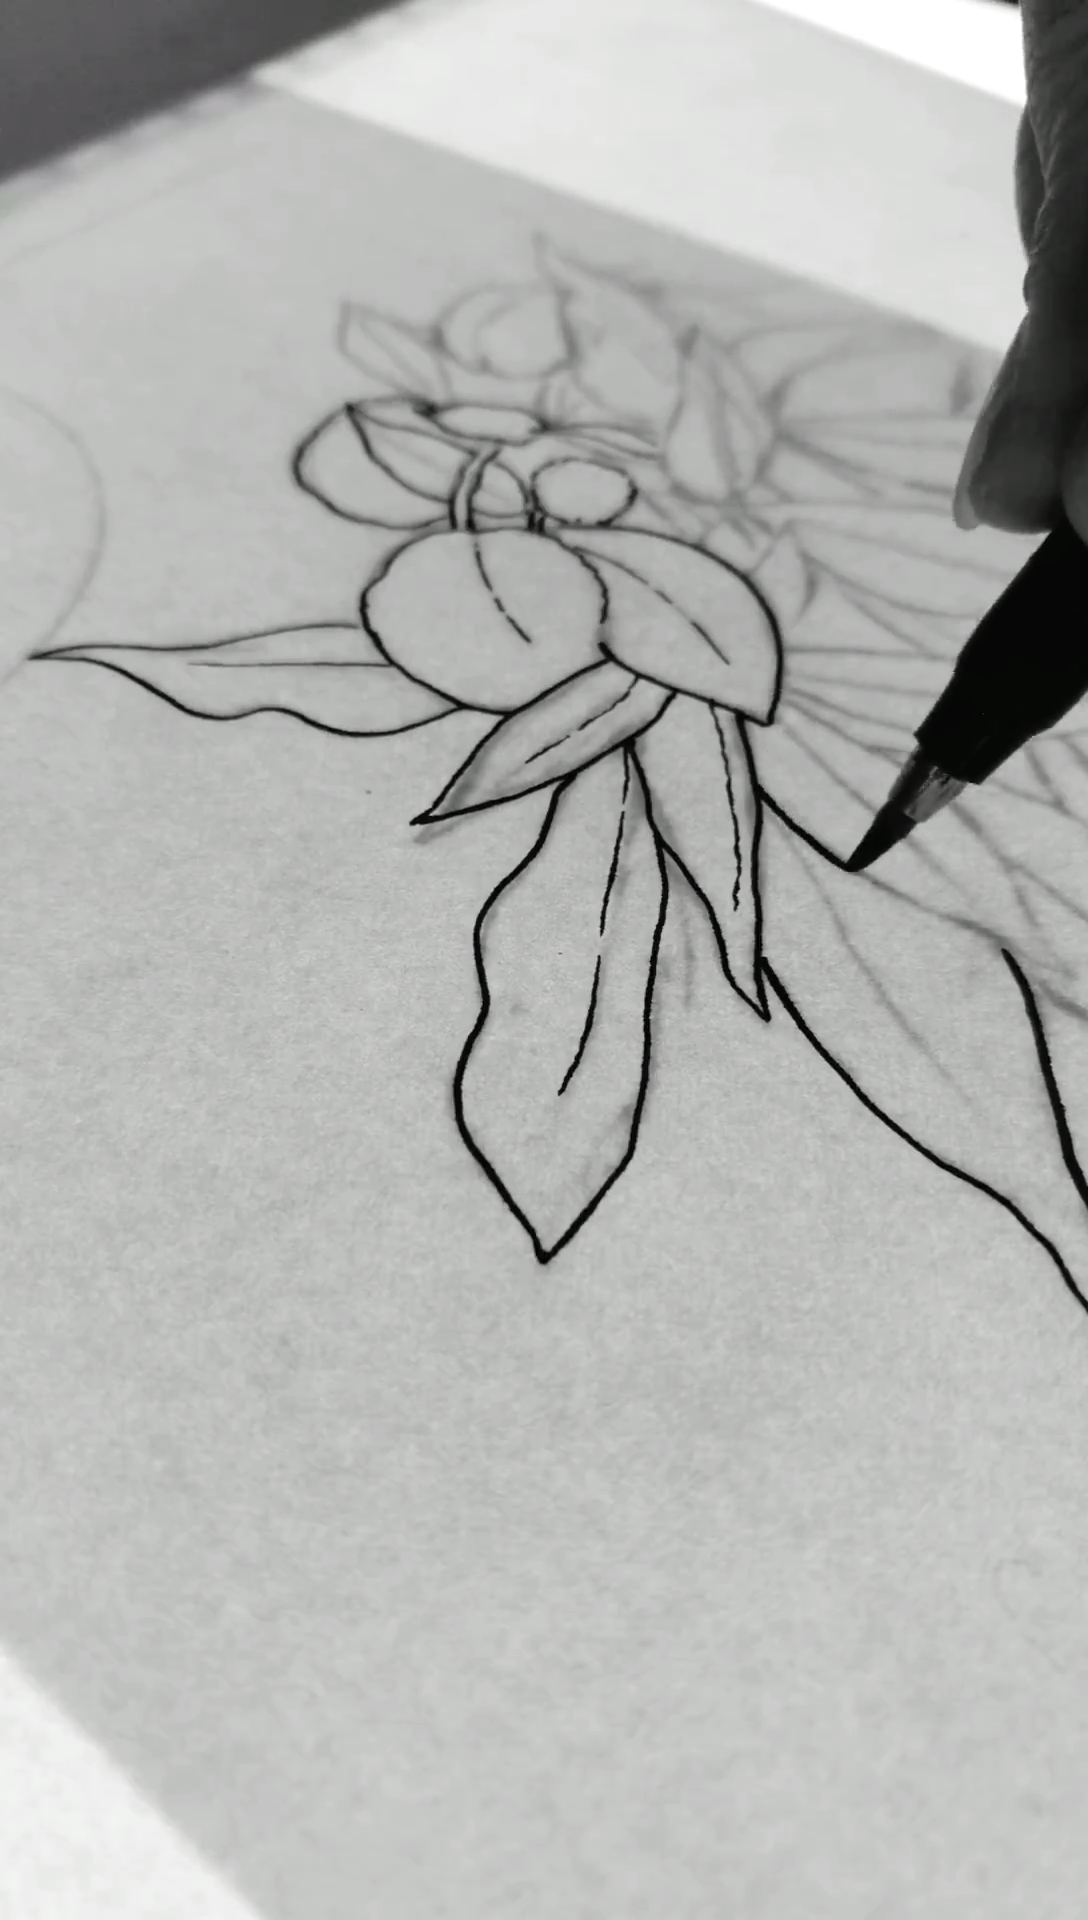 Drawing leaves with a brush pen. Botanical line art process video.